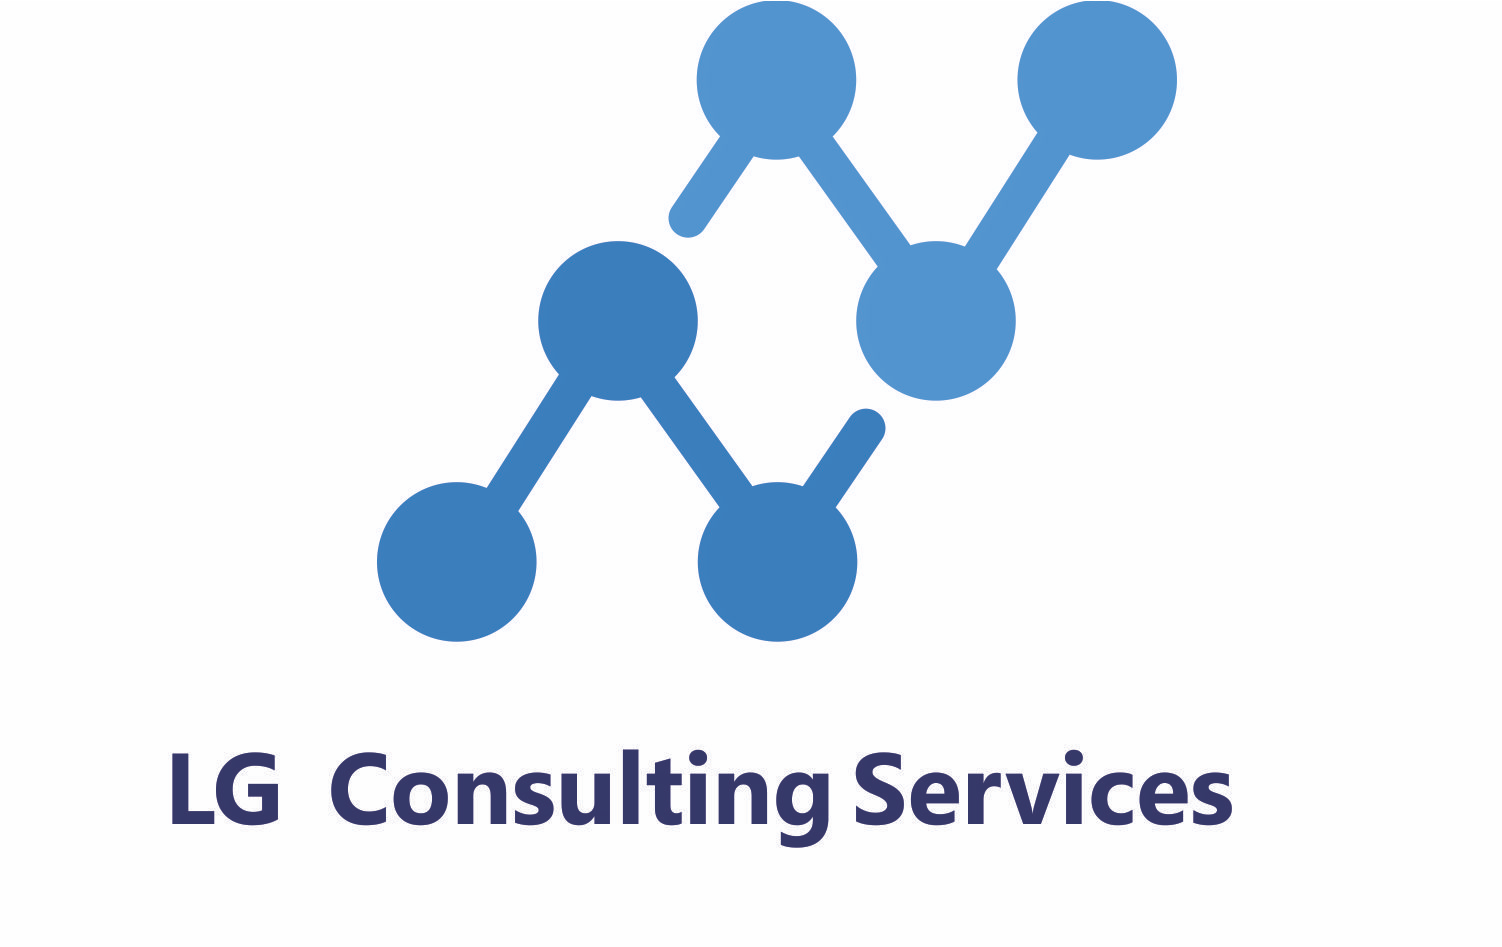 LG Consulting Services